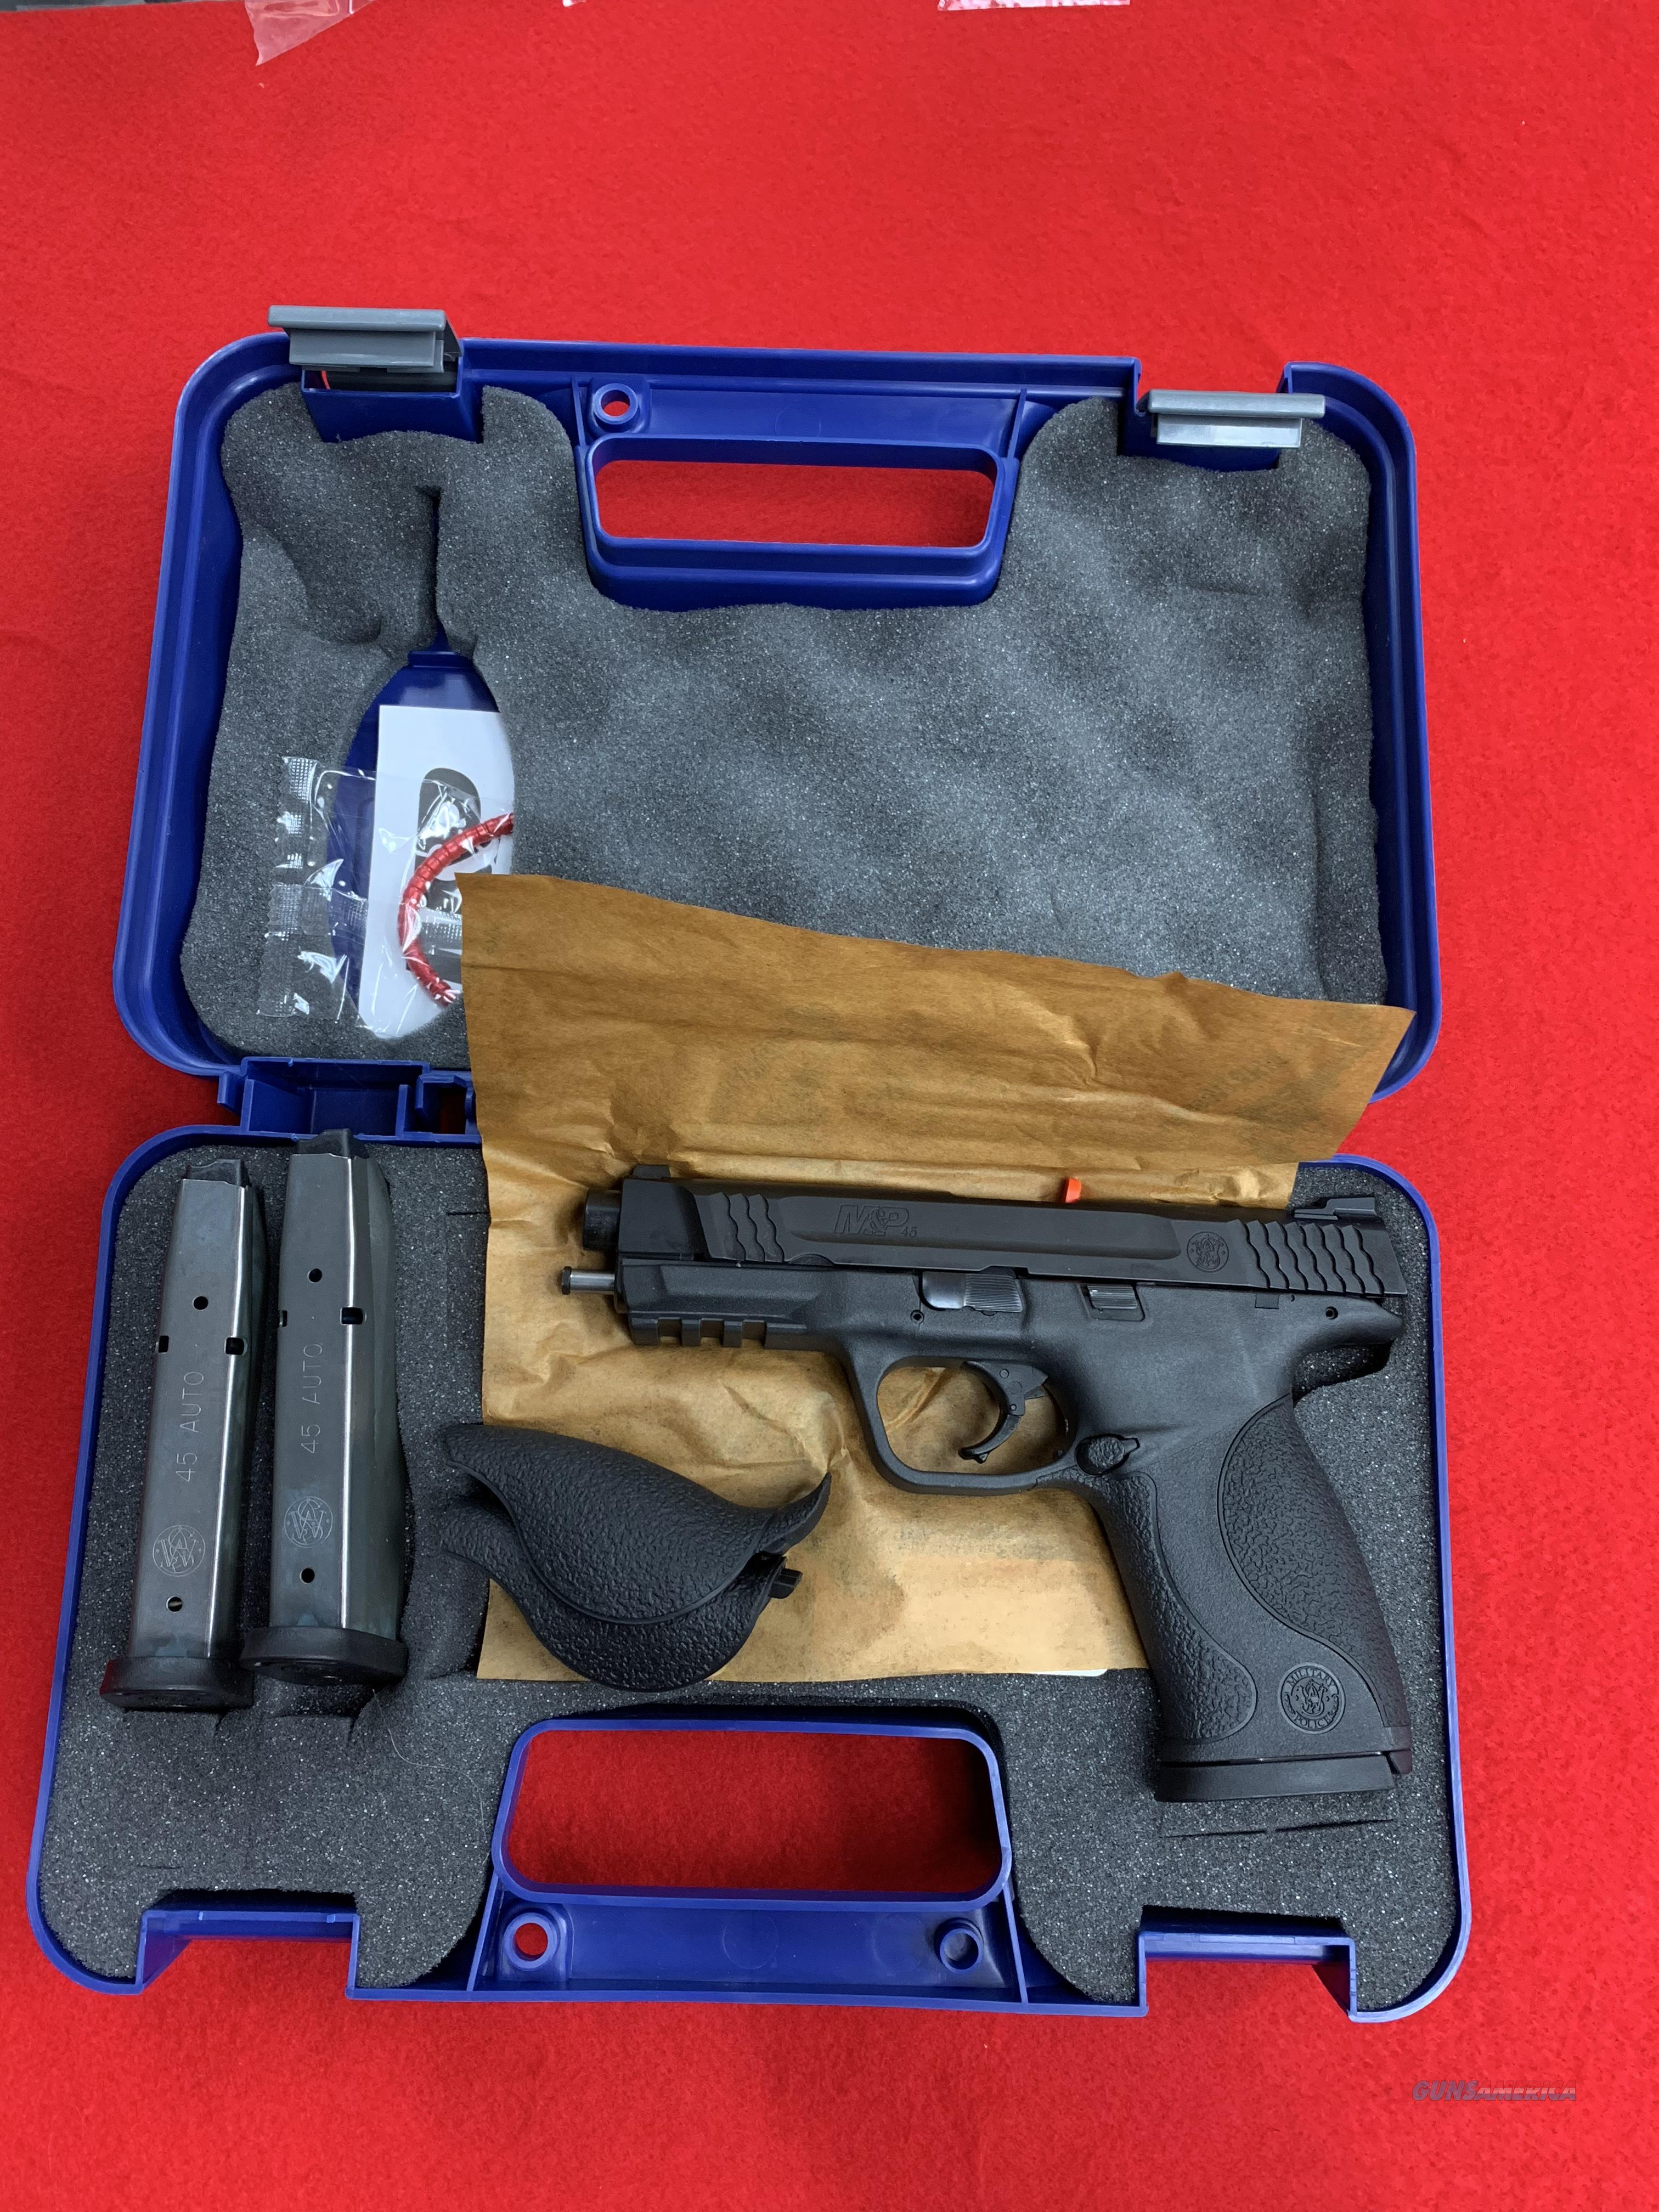 Smith & Wesson M&P 45  Guns > Pistols > Smith & Wesson Pistols - Autos > Polymer Frame